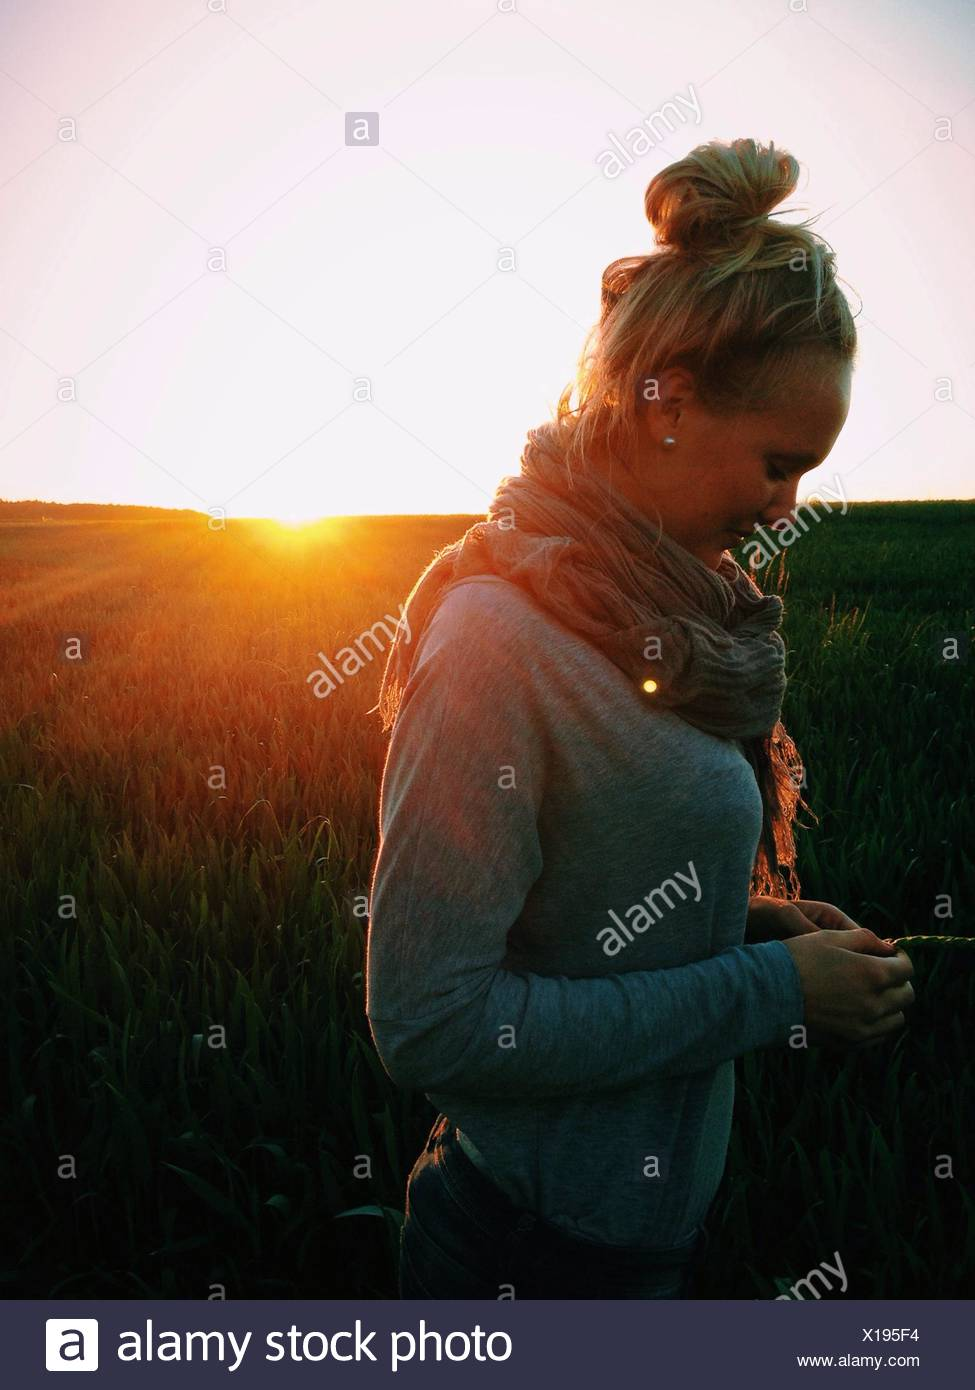 Side View Of Young Woman Standing On Field At Sunset - Stock Image